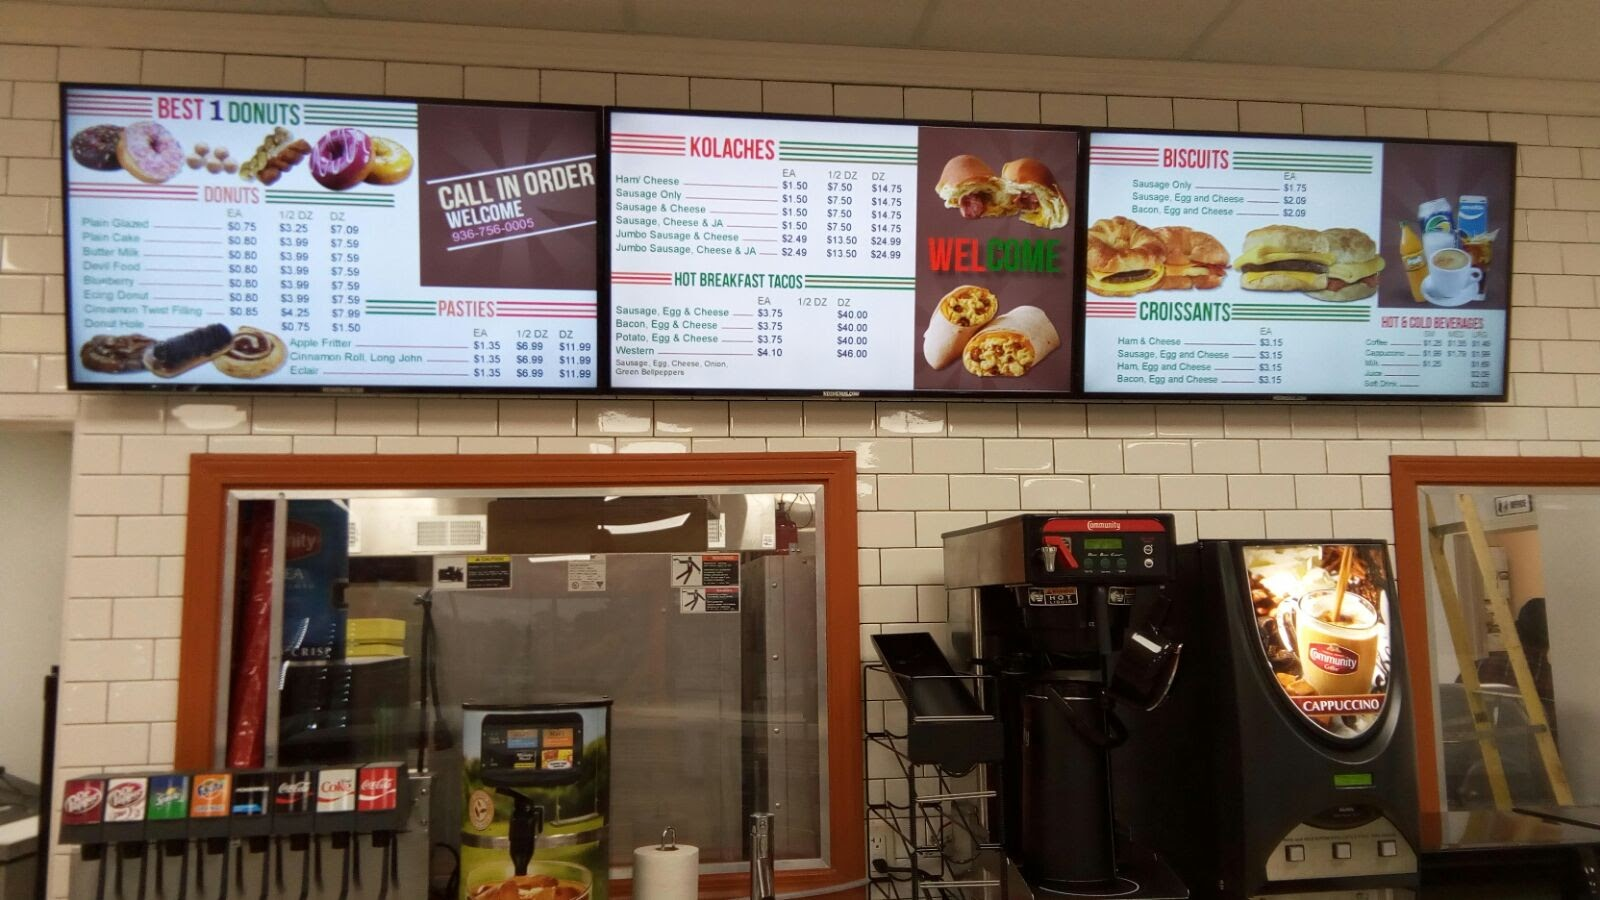 Donut Shop Digital Menu Boards